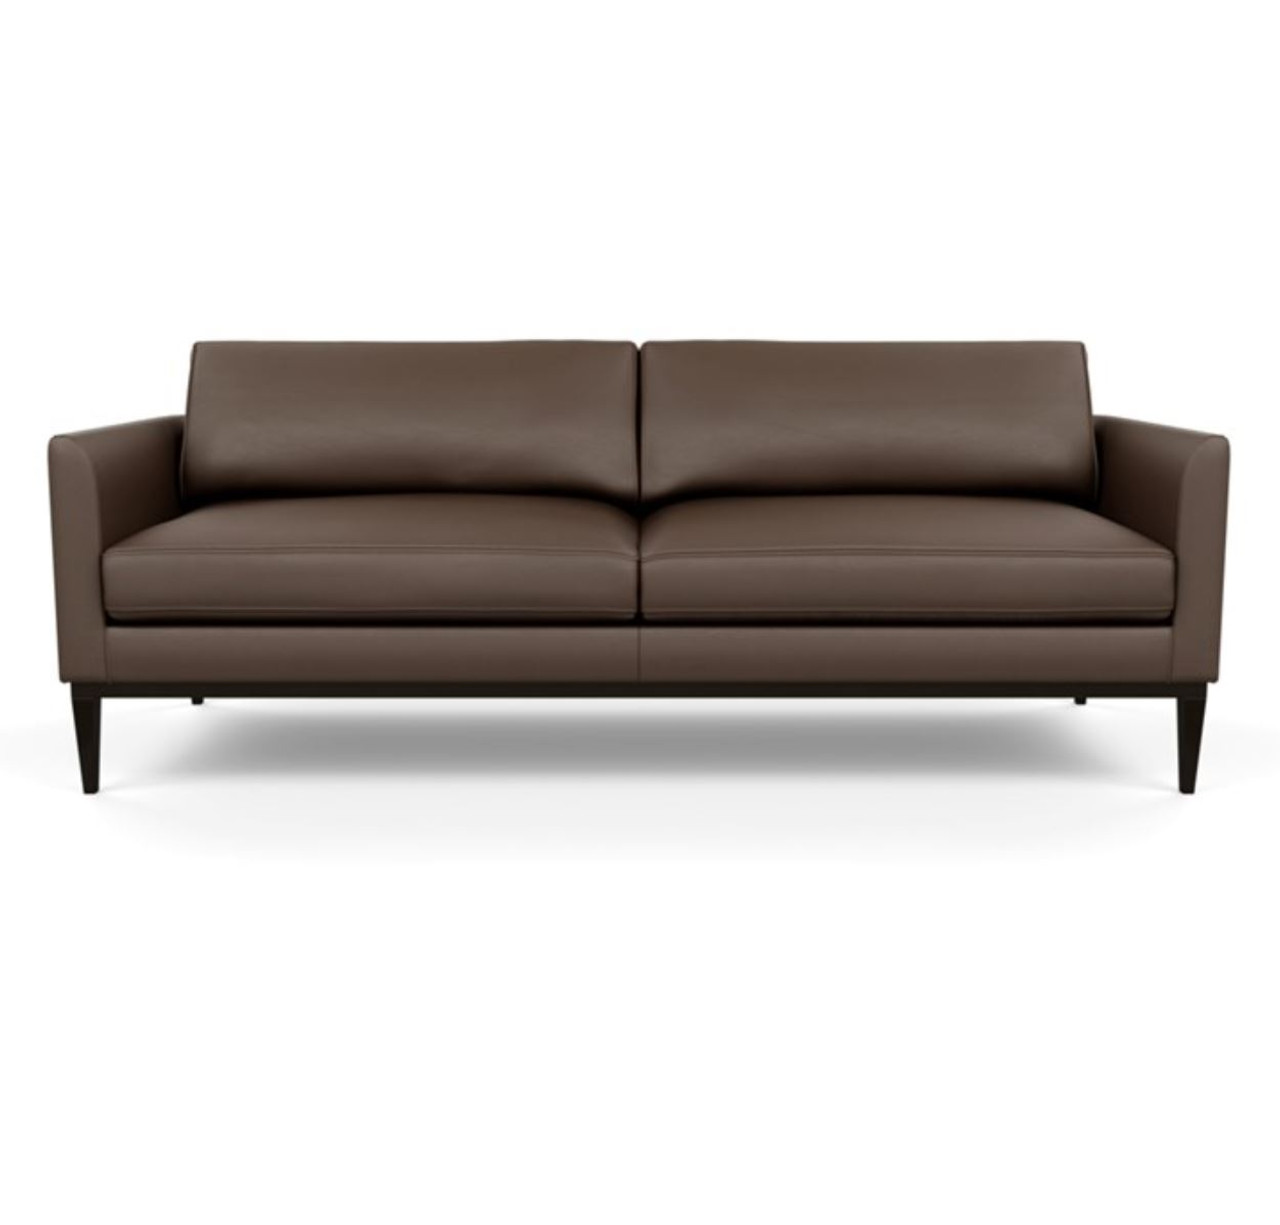 HENLEY SOFA & SECTIONAL